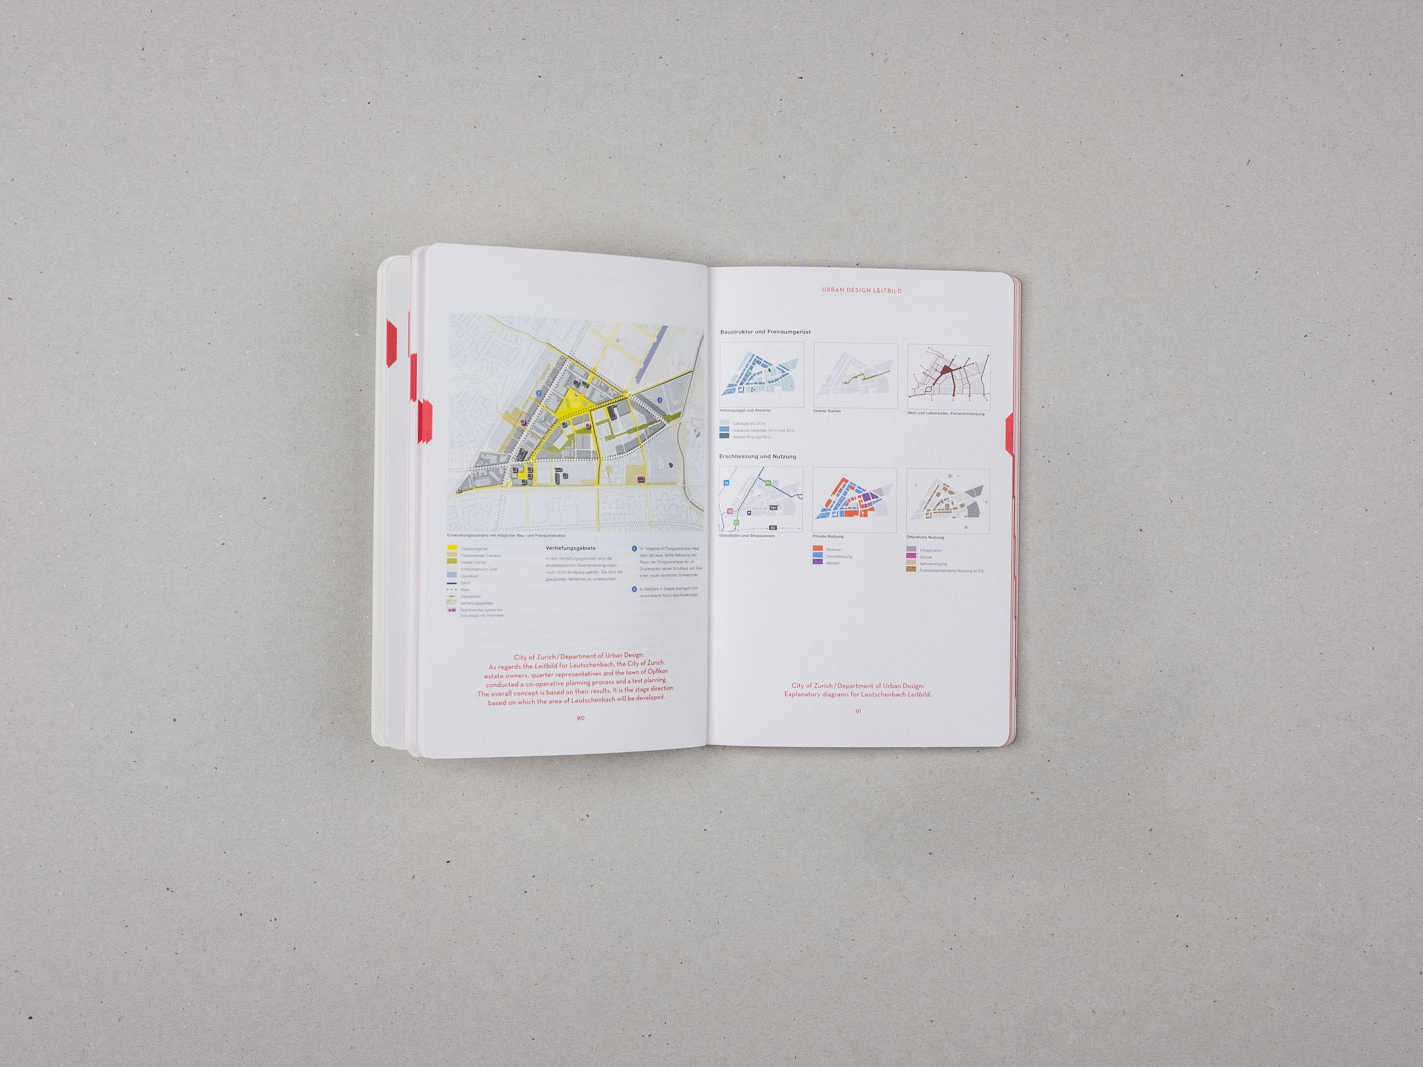 Handbook of Methods for Architecture and Urban Design - 7